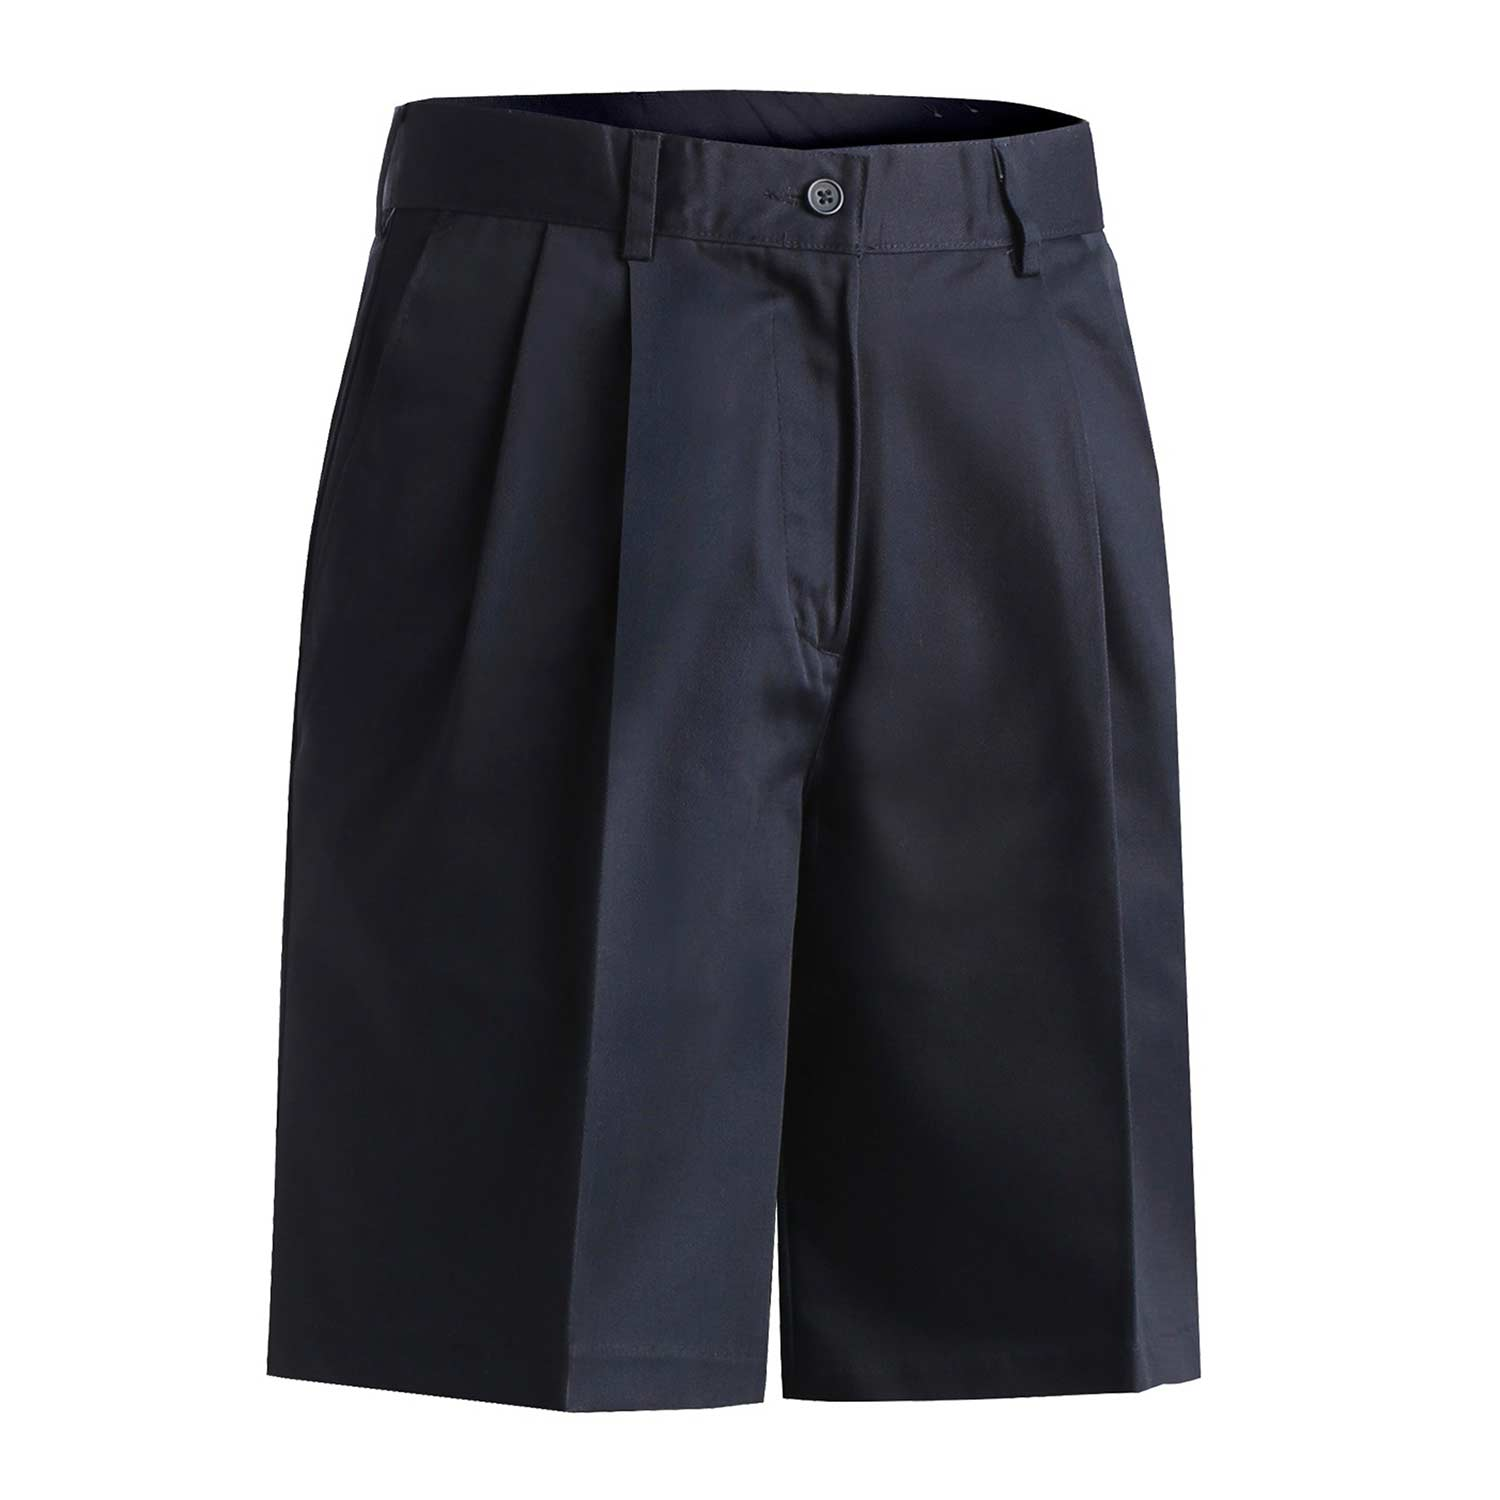 Edwards Ladies Utility Pleated Front Chino Short